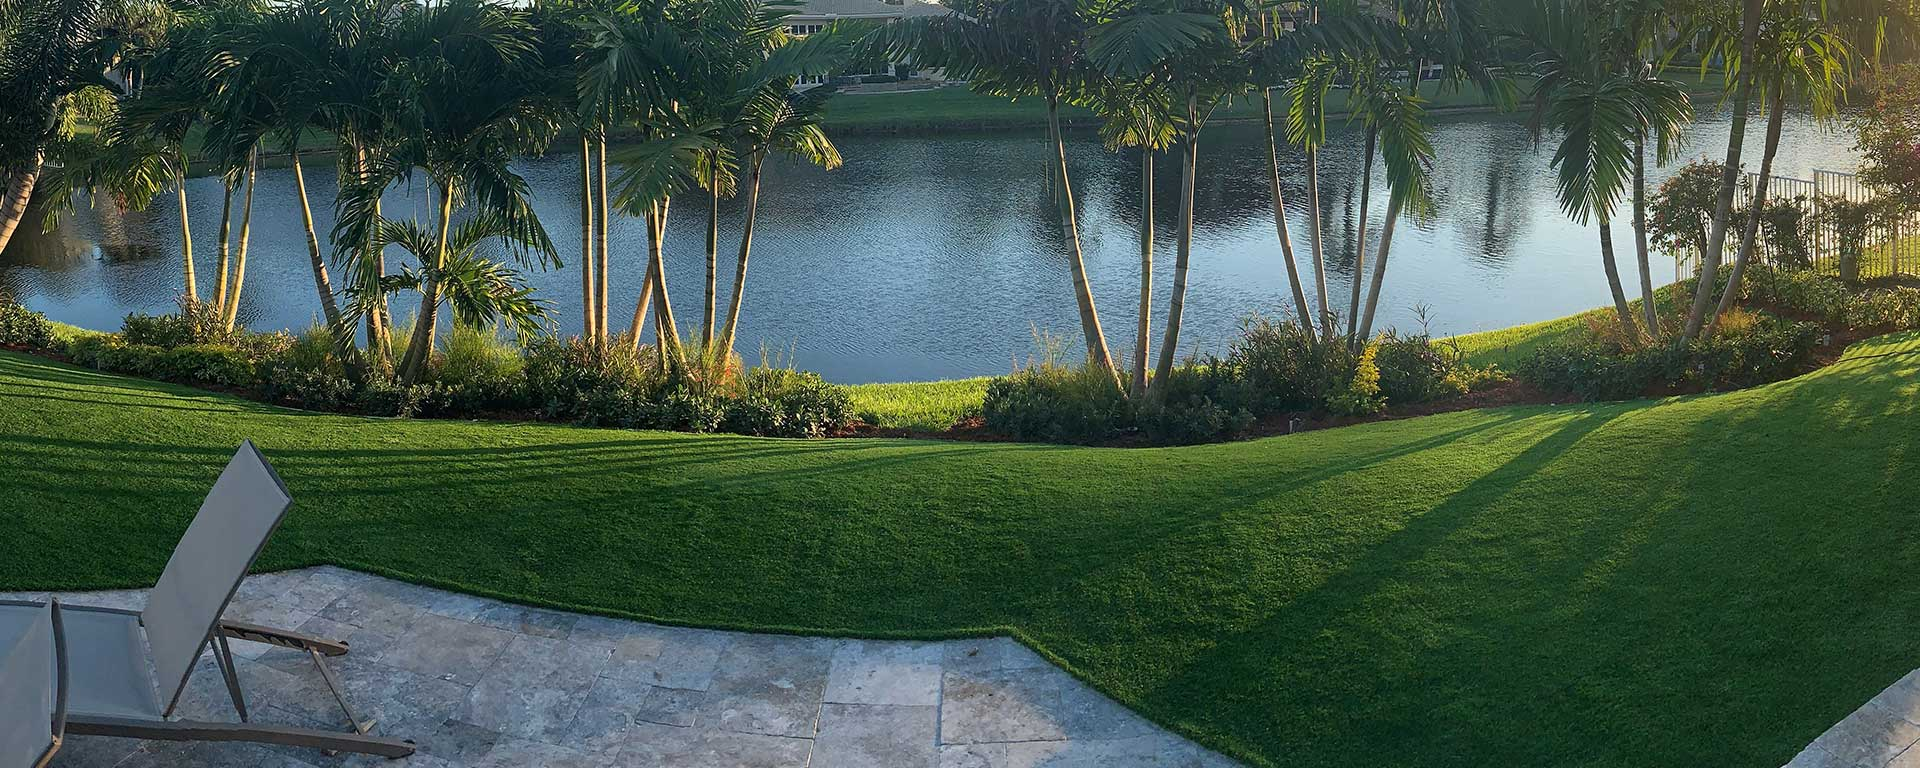 Boca Raton Artificial Grass Installation, Putting Green Installation and Synthetic Turf Installation